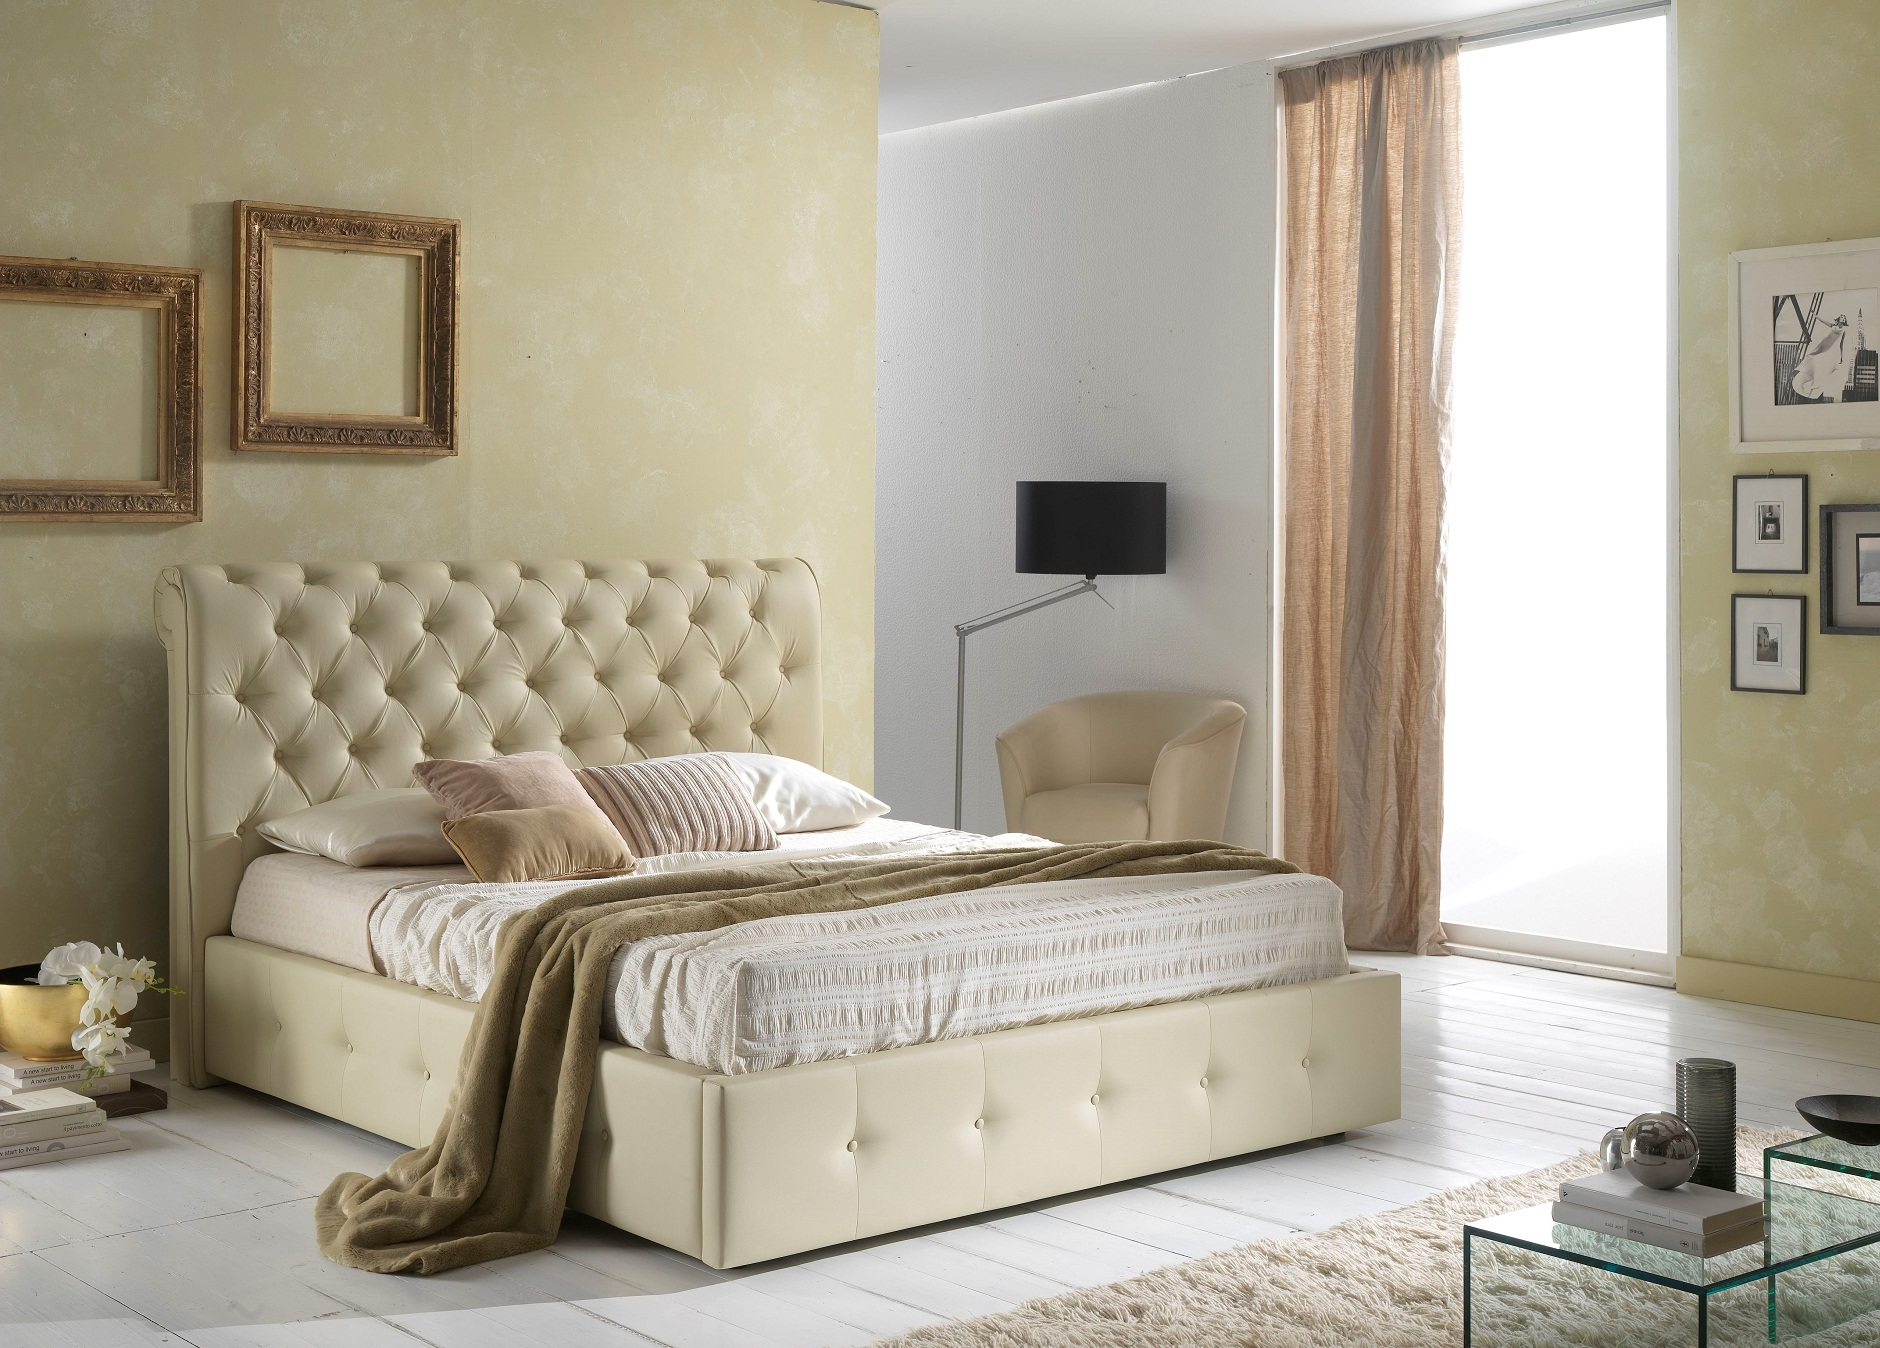 bett para 160x200 cm mit stauraum polster beige creme pen 160 s. Black Bedroom Furniture Sets. Home Design Ideas